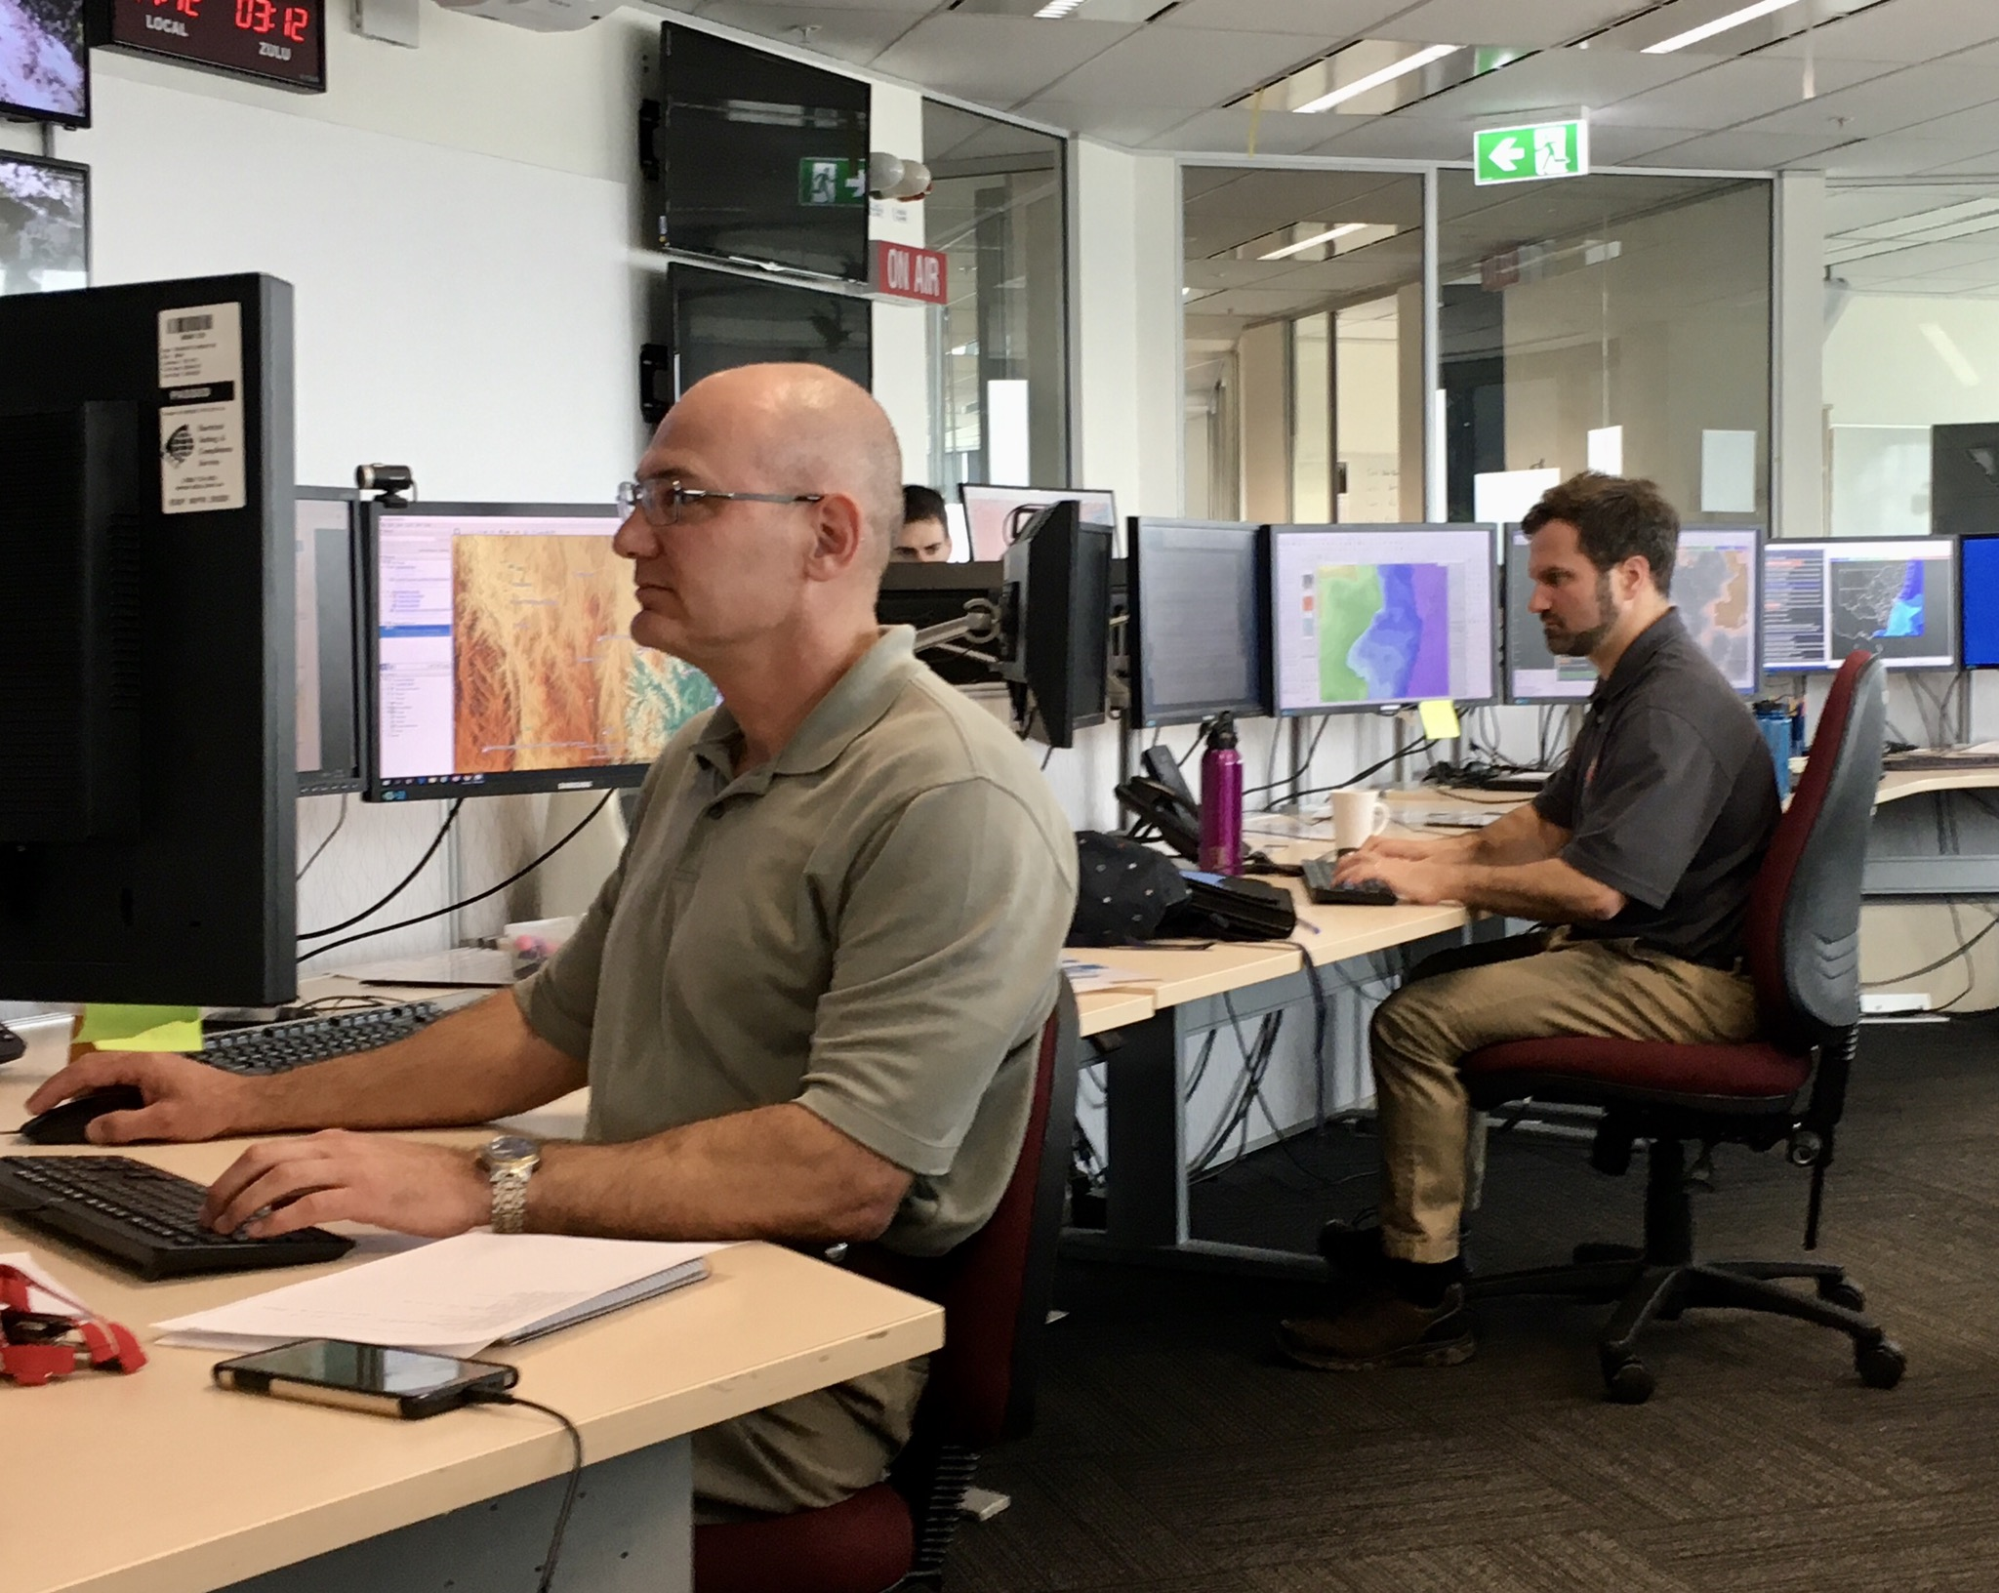 On right, IMET Mark Petterito (NWS Binghamton, NY) develops one of 20 spot weather forecasts requested by firefighters on this day. He works alongside meteorologists at the Australian Bureau of Meteorology regional office in Sydney. January 2020 Credit: NOAA